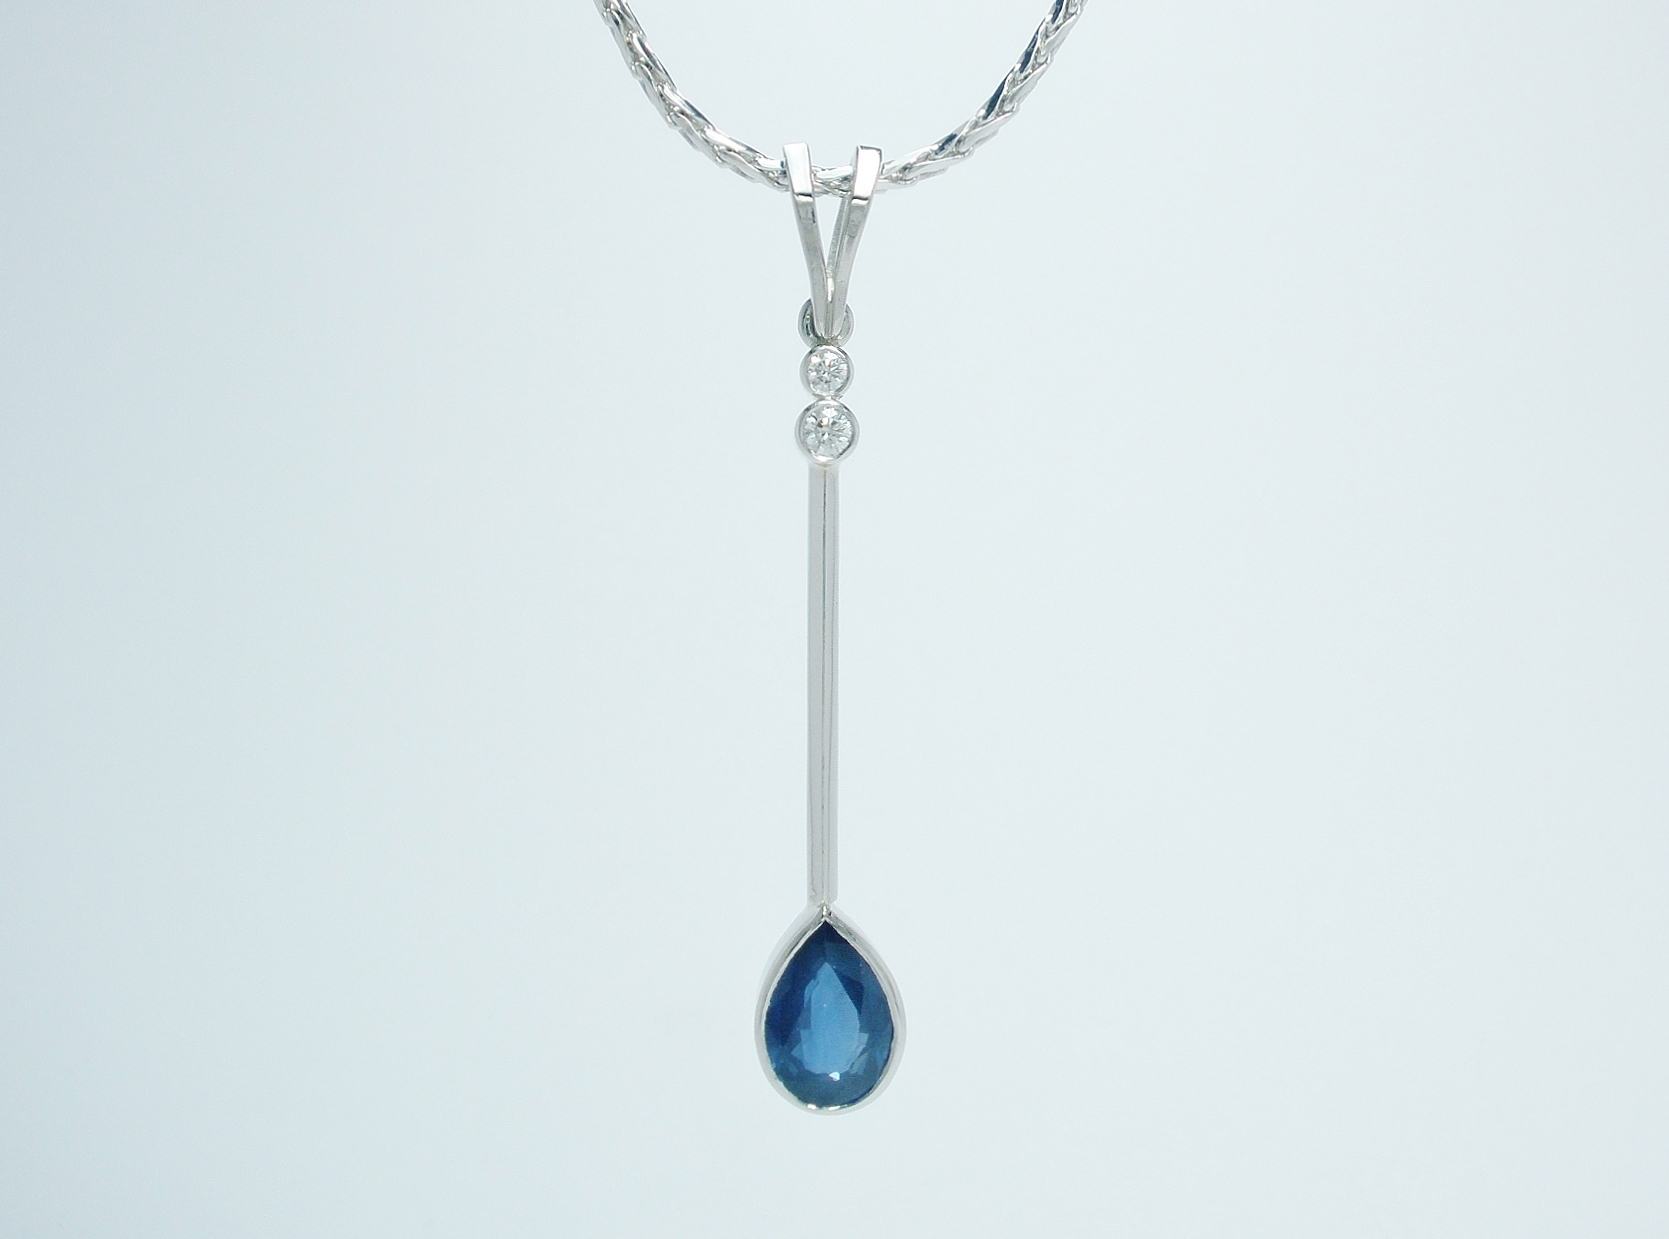 A 3 stone pear shaped sapphire and round brilliant cut pendulum style pendant mounted in palladium and platinum.